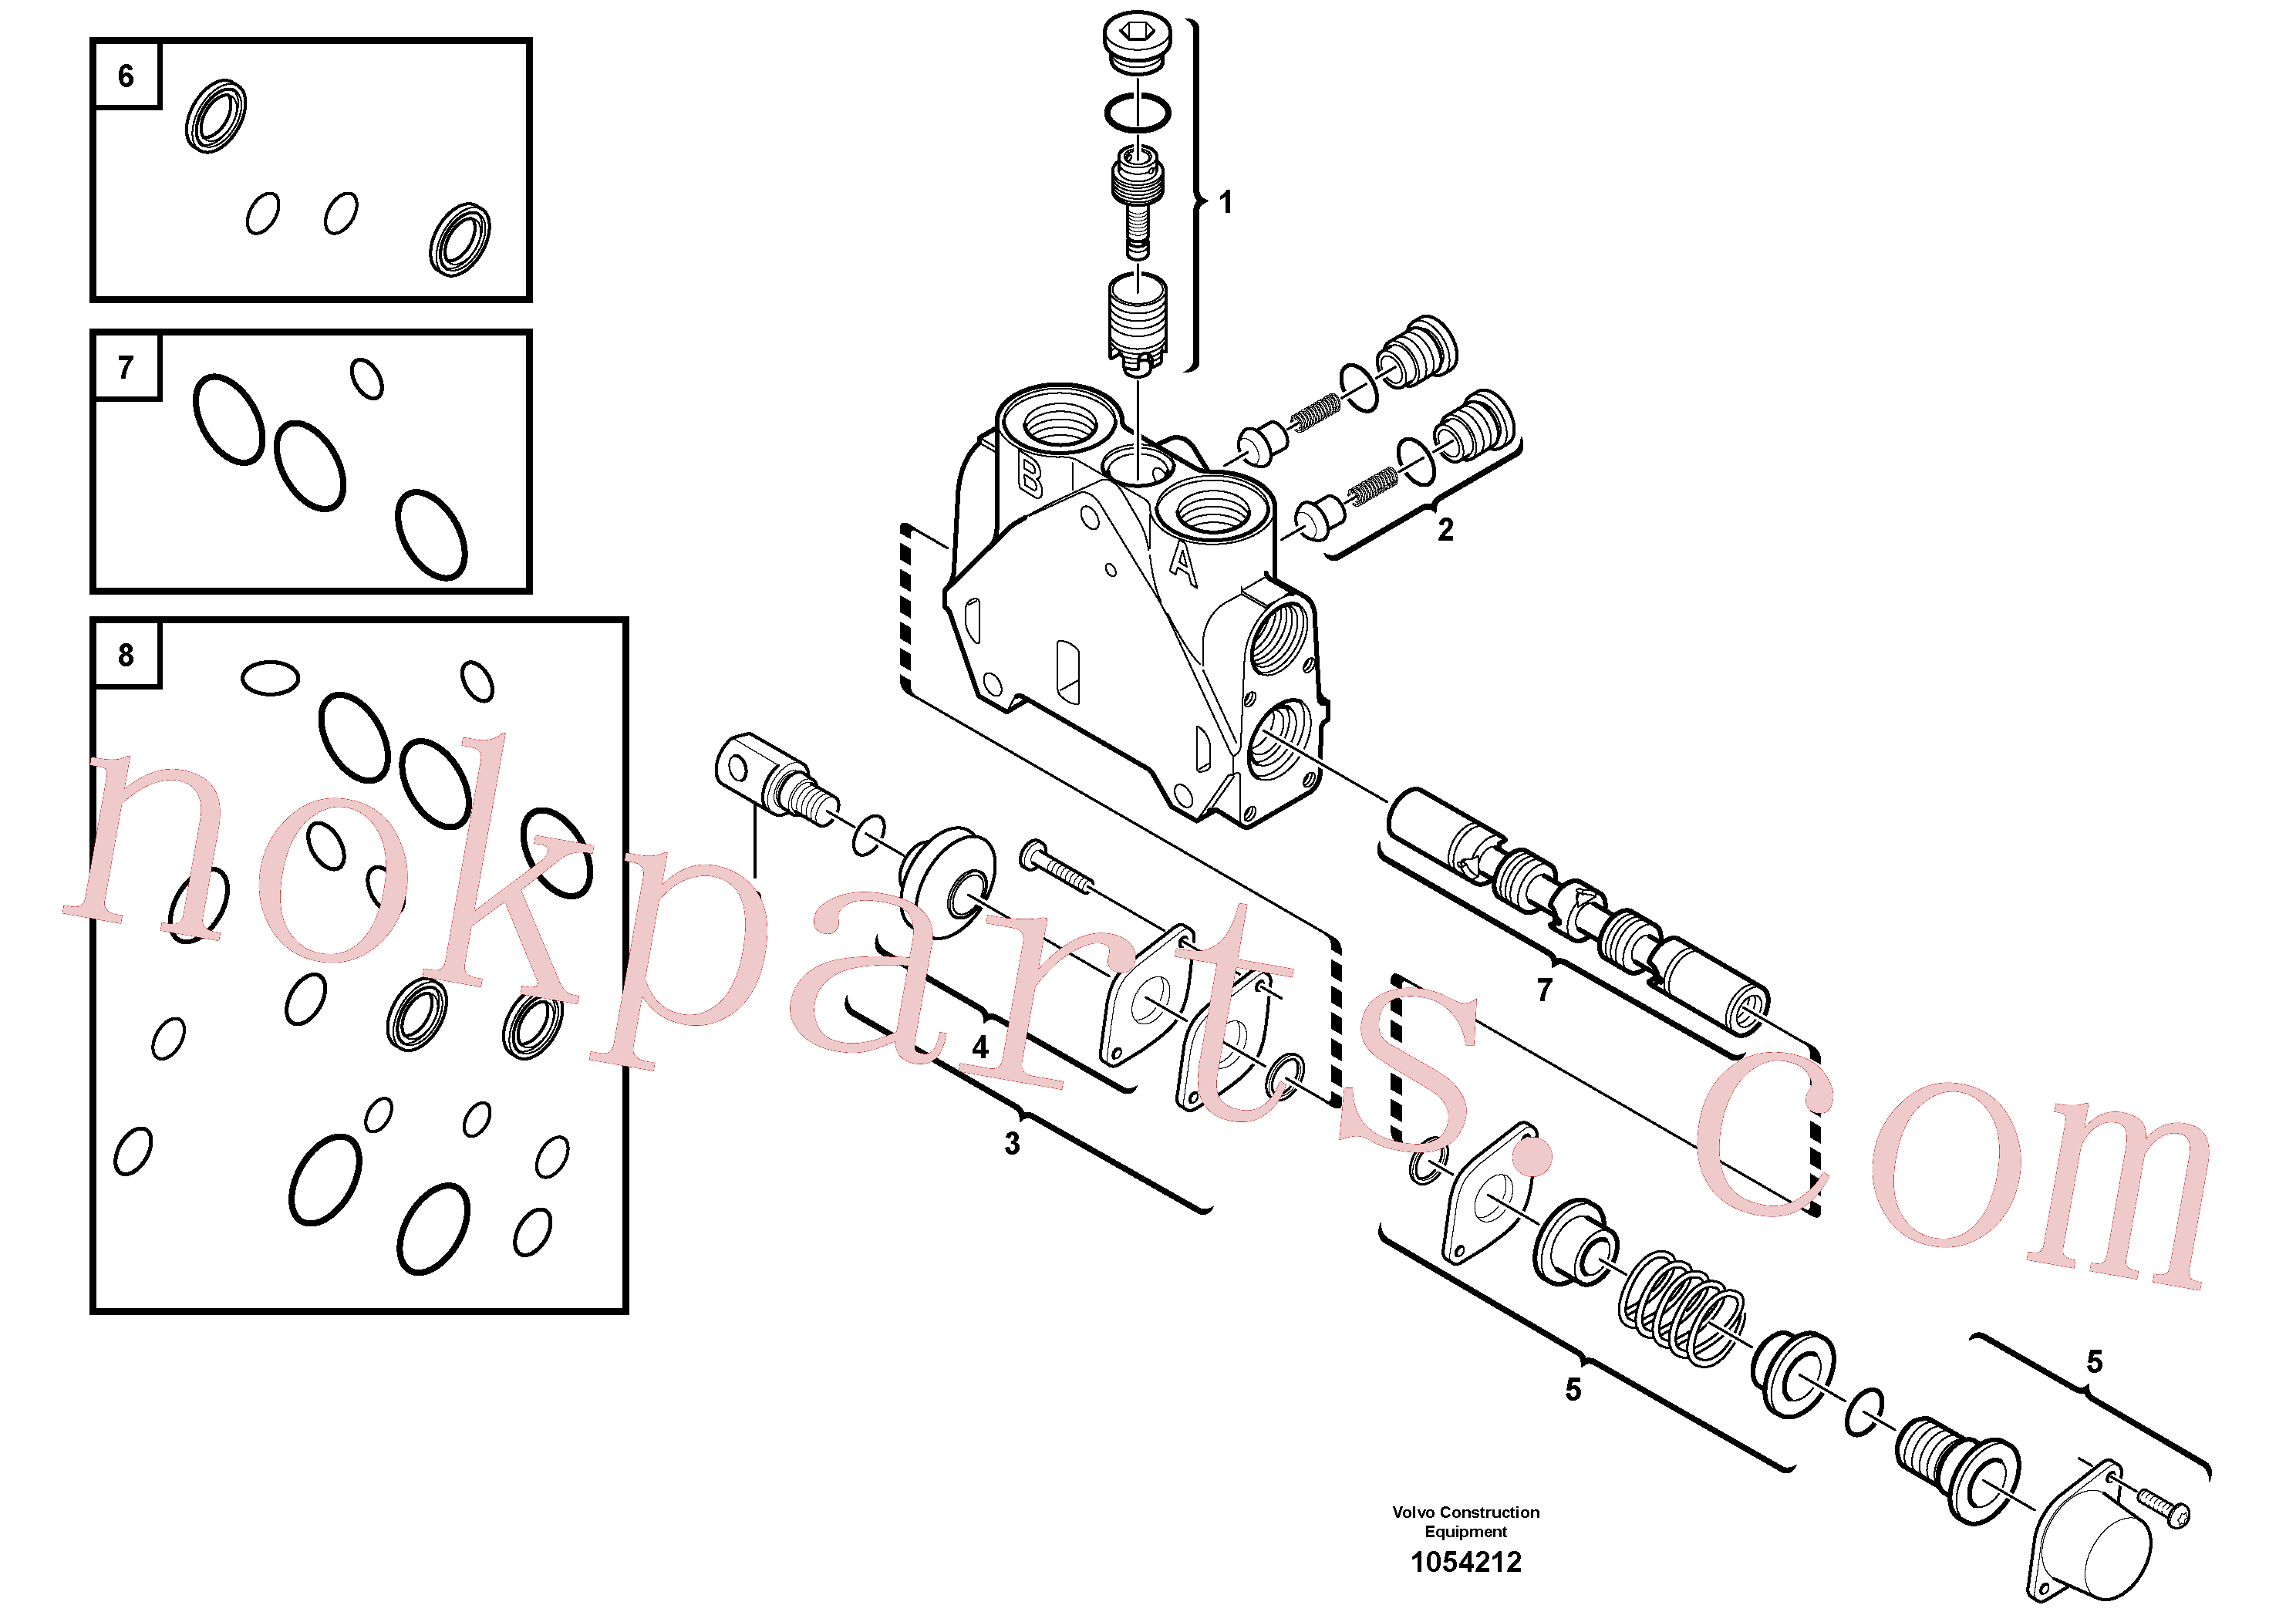 VOE11715276 for Volvo Valve section(1054212 assembly)